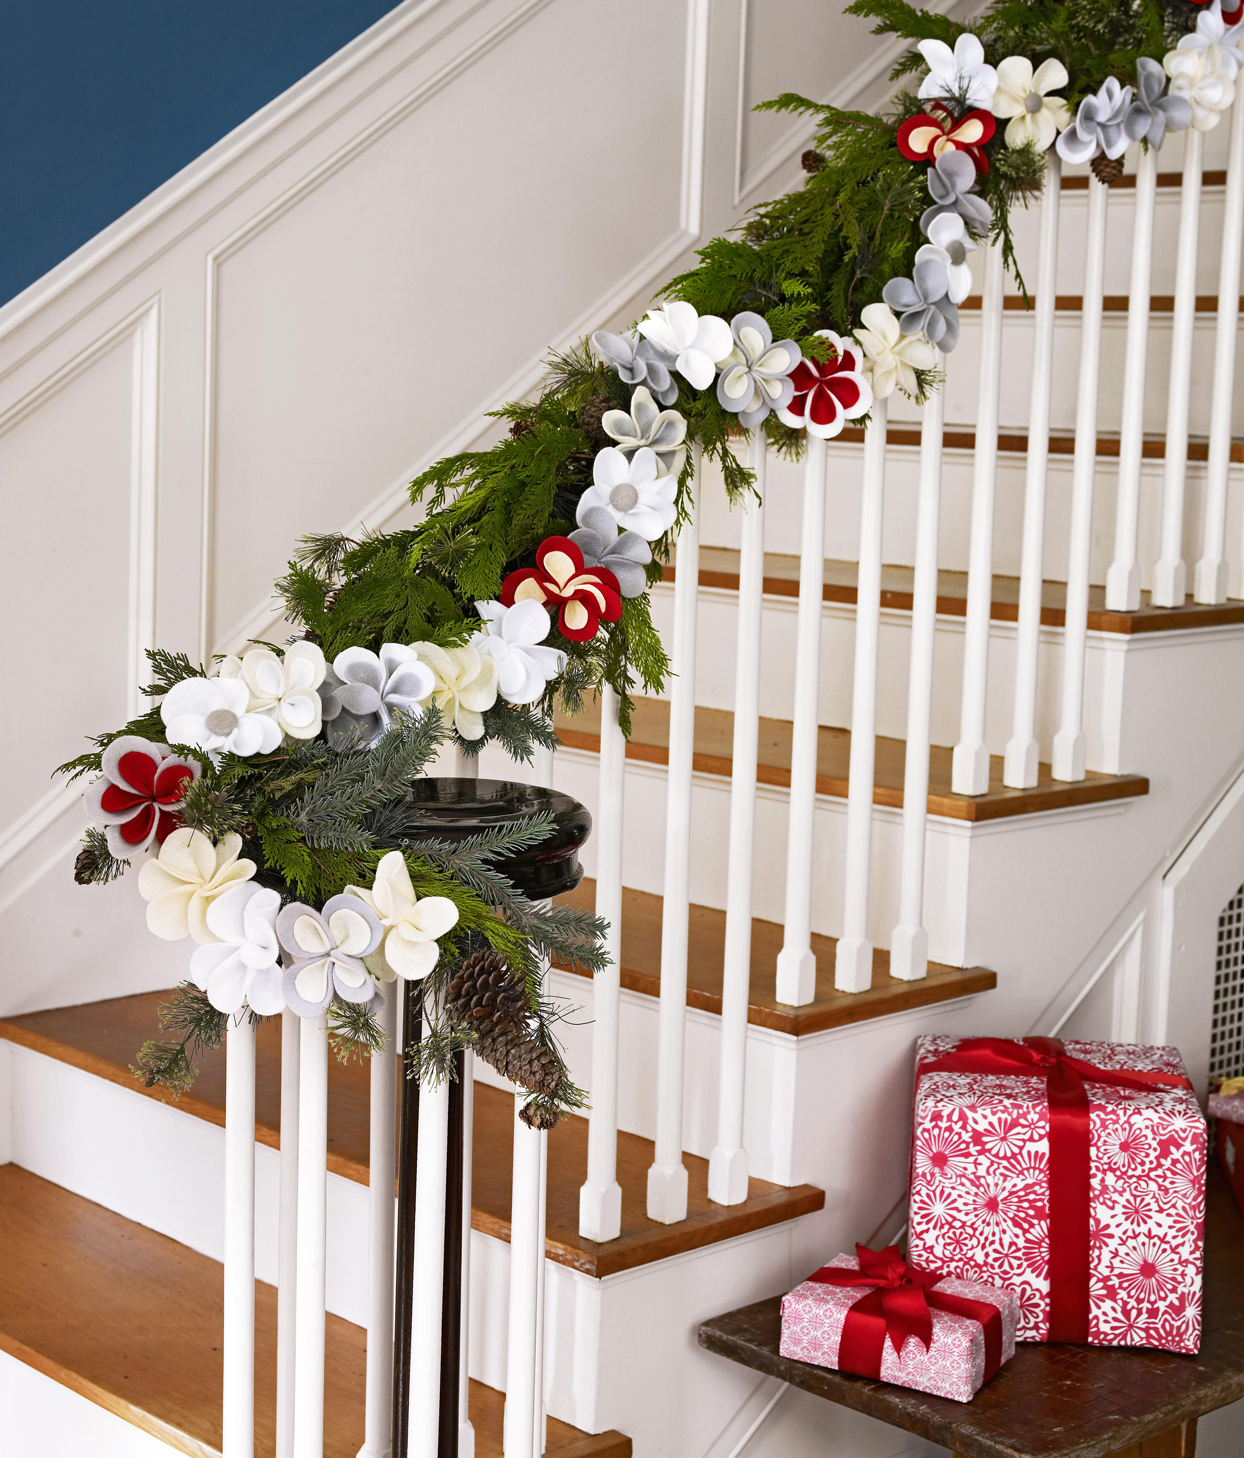 Felt Flower Garland stairs